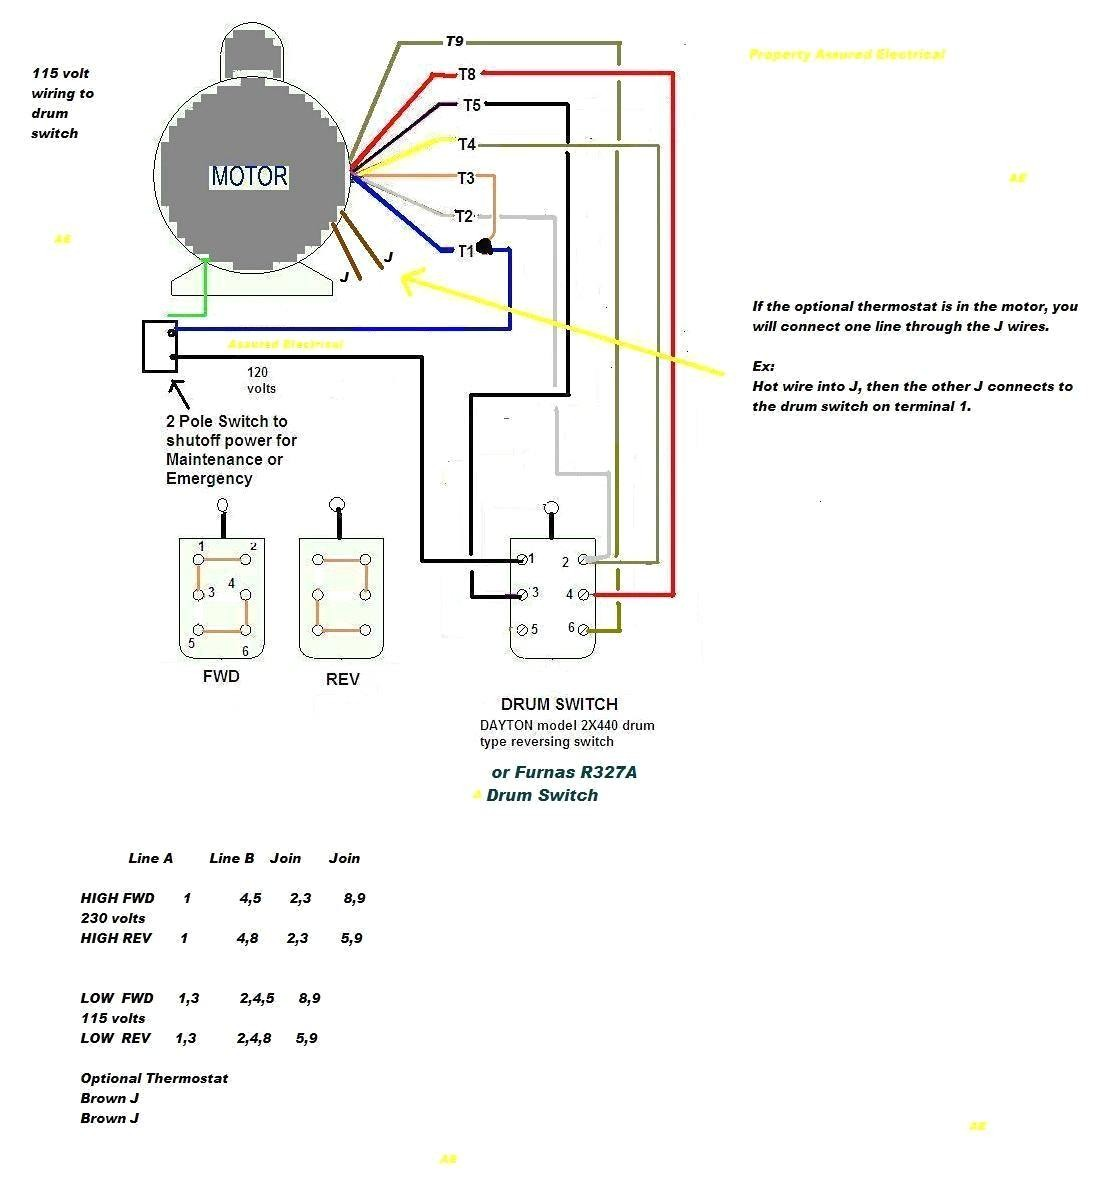 hight resolution of 120 volt motor switch wiring diagram wiring diagram schematics 220 motor wiring diagram